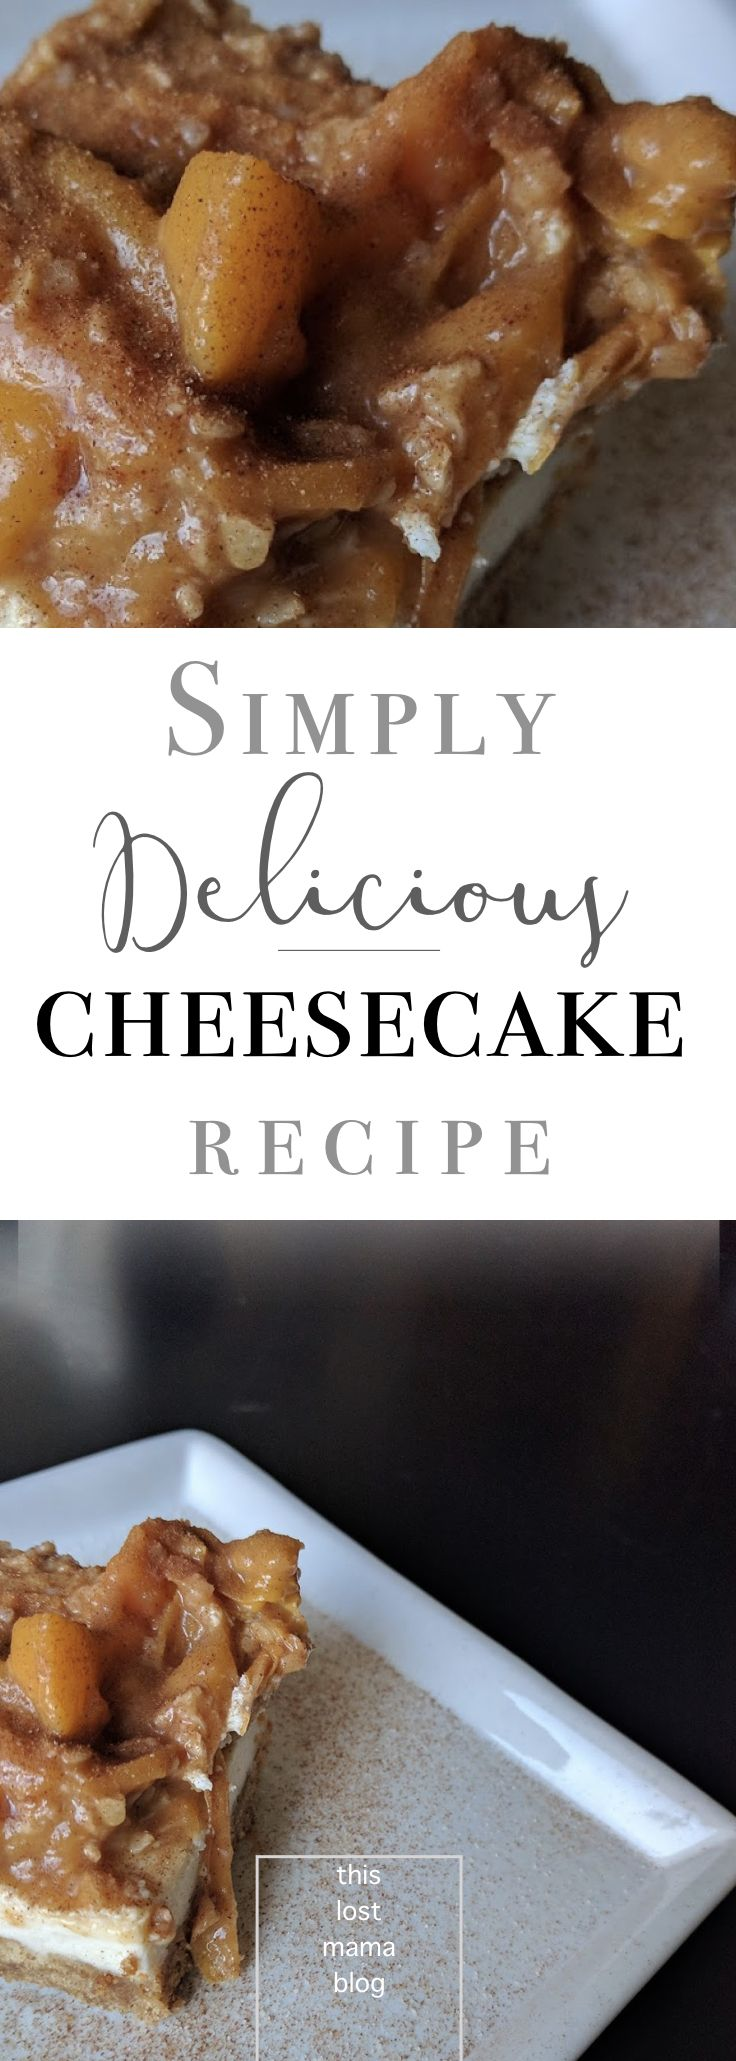 Simple cheesecake recipe. Simple and quick way to make cheesecake! So easy and in no time! #recipes #foodie